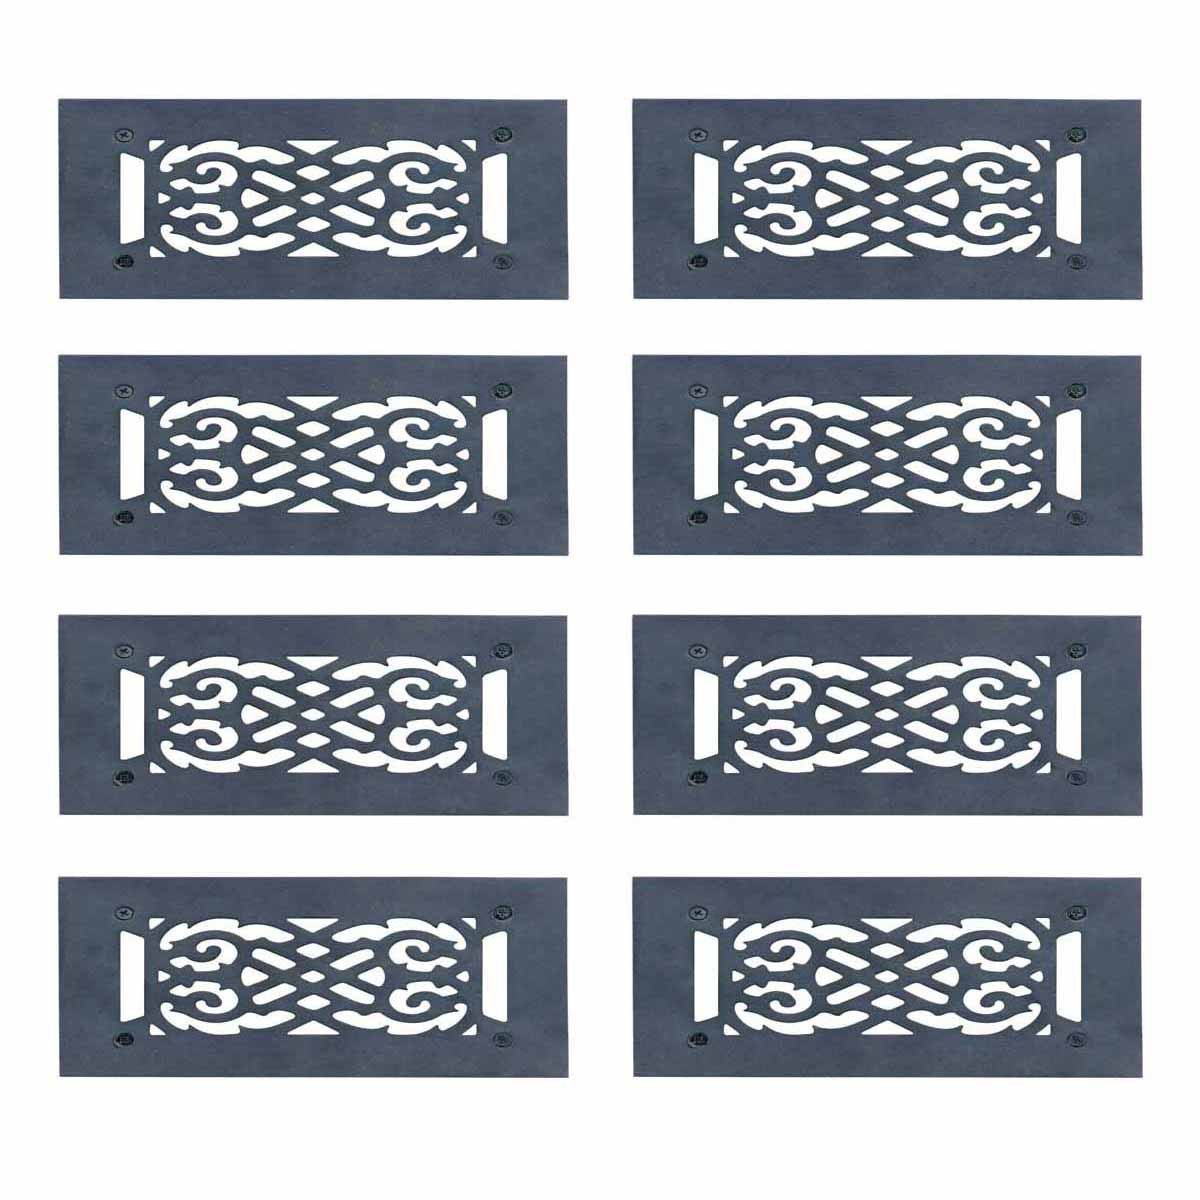 """8 Heat Air Grille Cast Victorian 5.5"""" x 10"""" Overall 